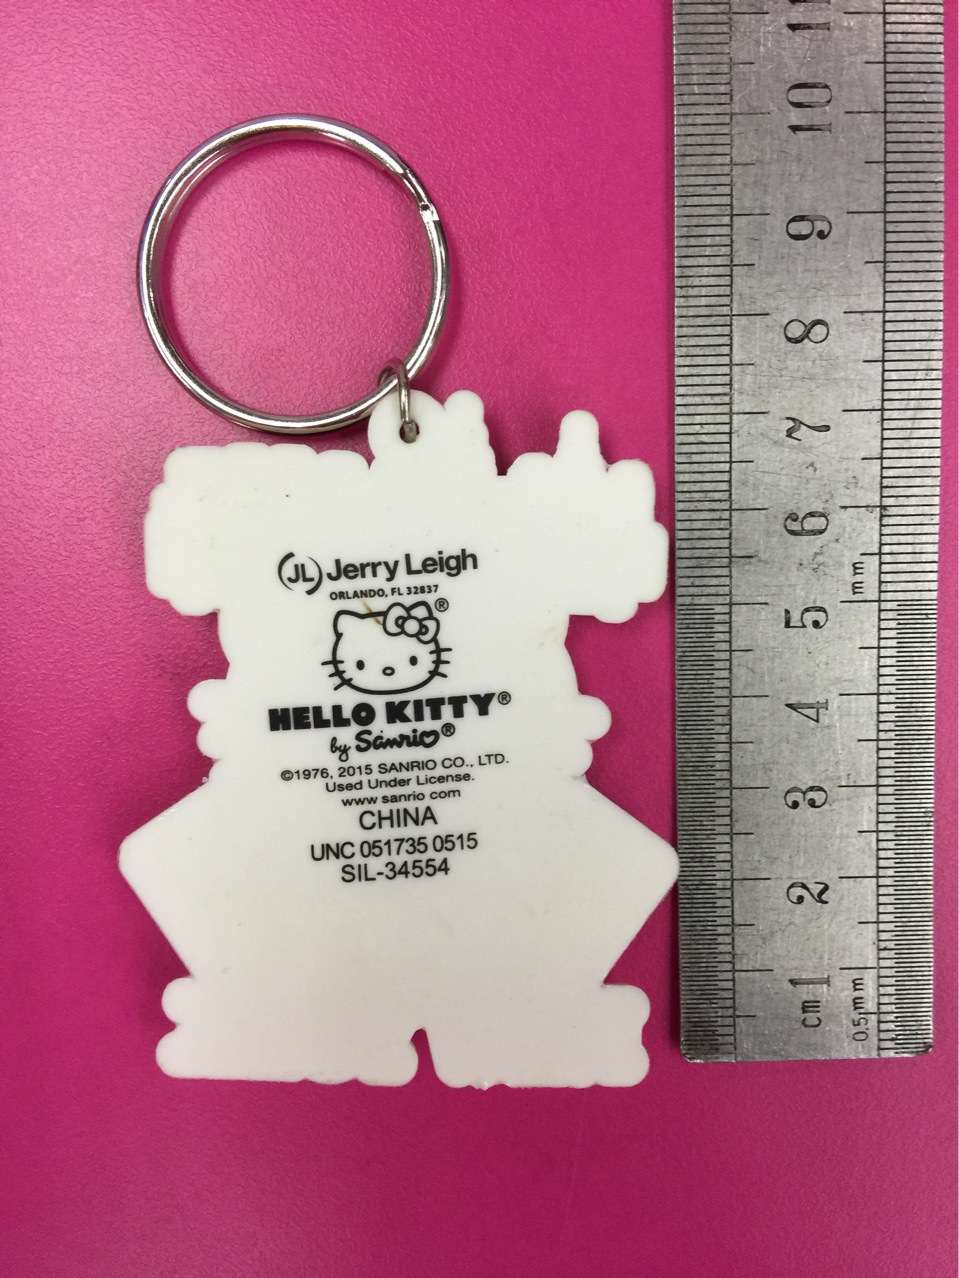 G604-1 Sanrio Hello Kitty Original Japanese anime figure rubber Silicone mobile phone charms keychain strap